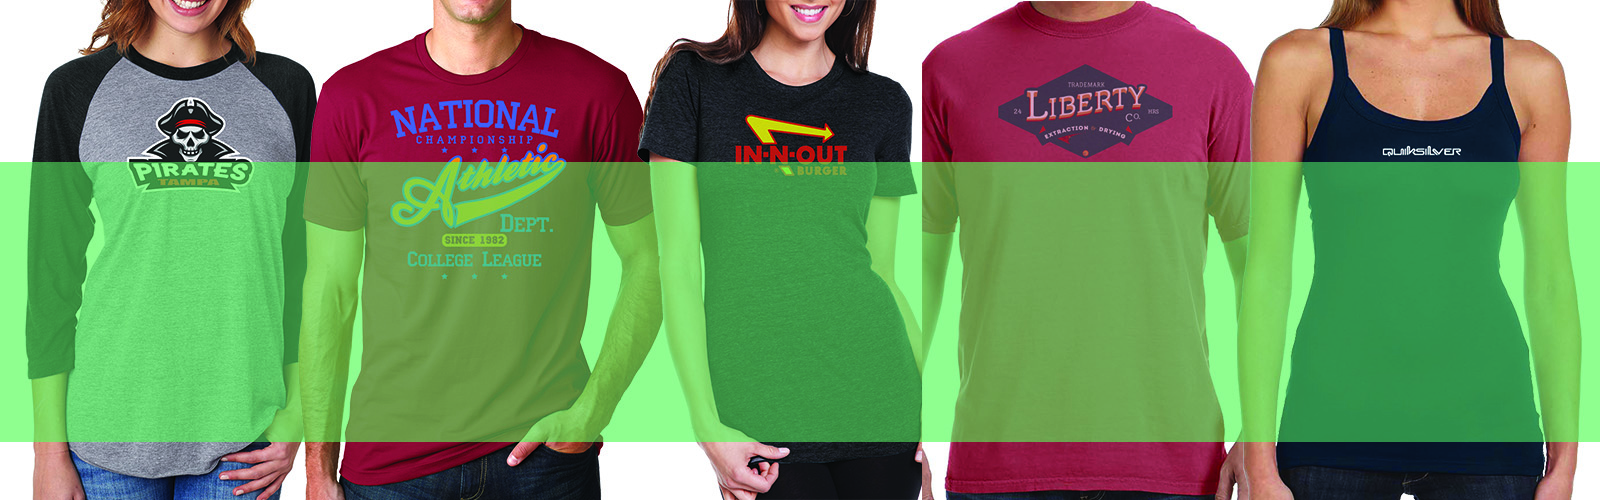 How To Print On Shirt Without Transfer Paper Rockwall Auction